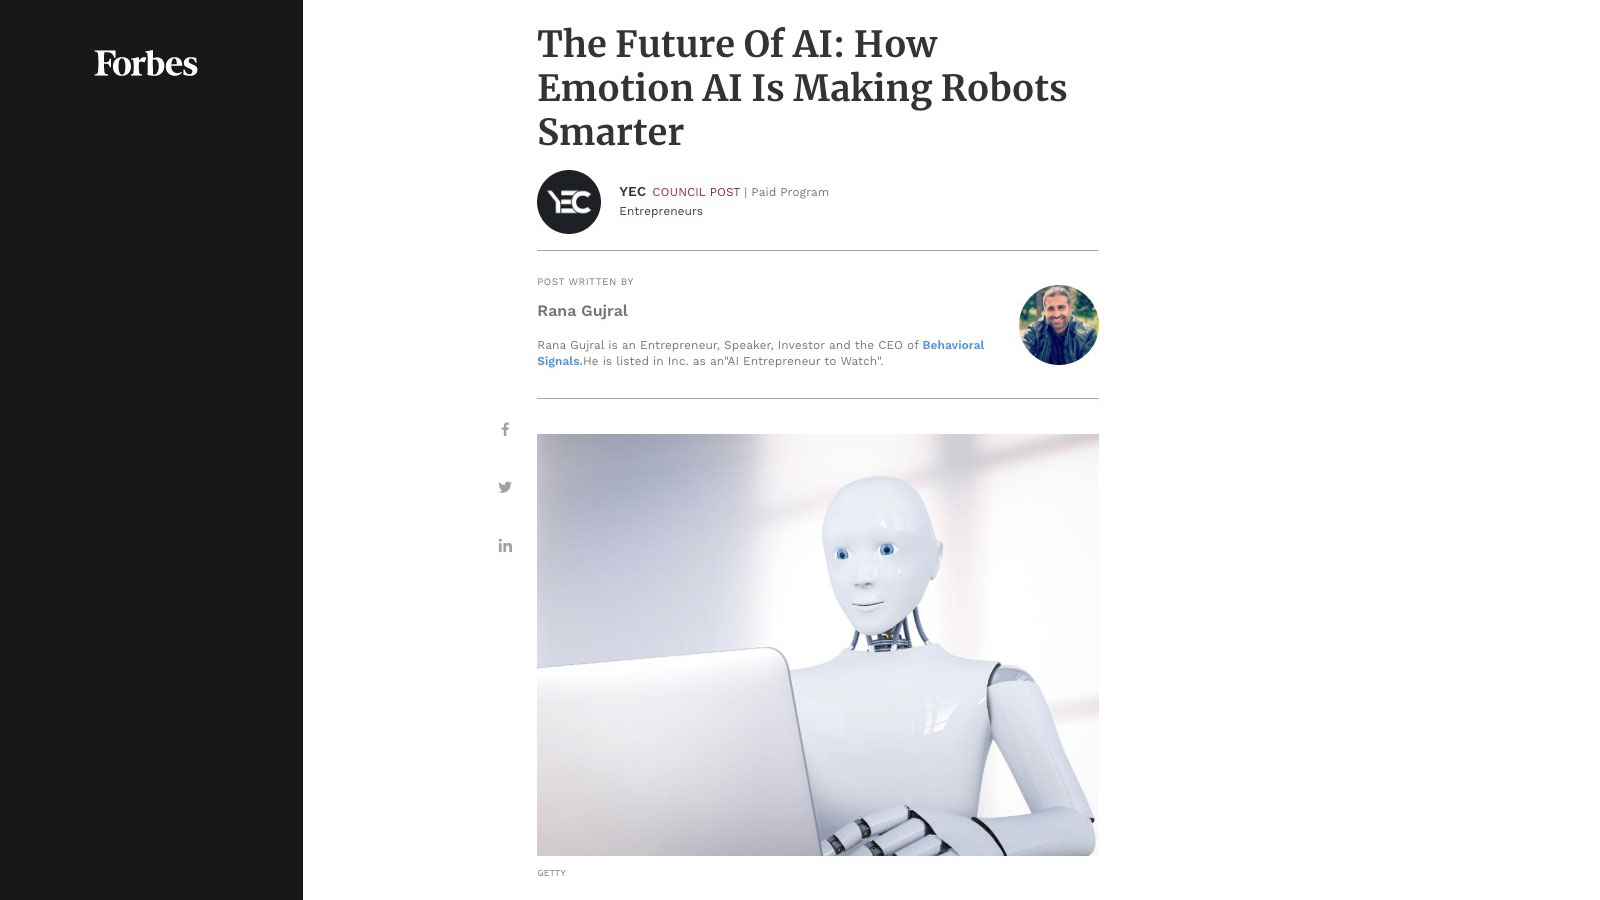 The Future Of AI: How Emotion AI Is Making Robots Smarter